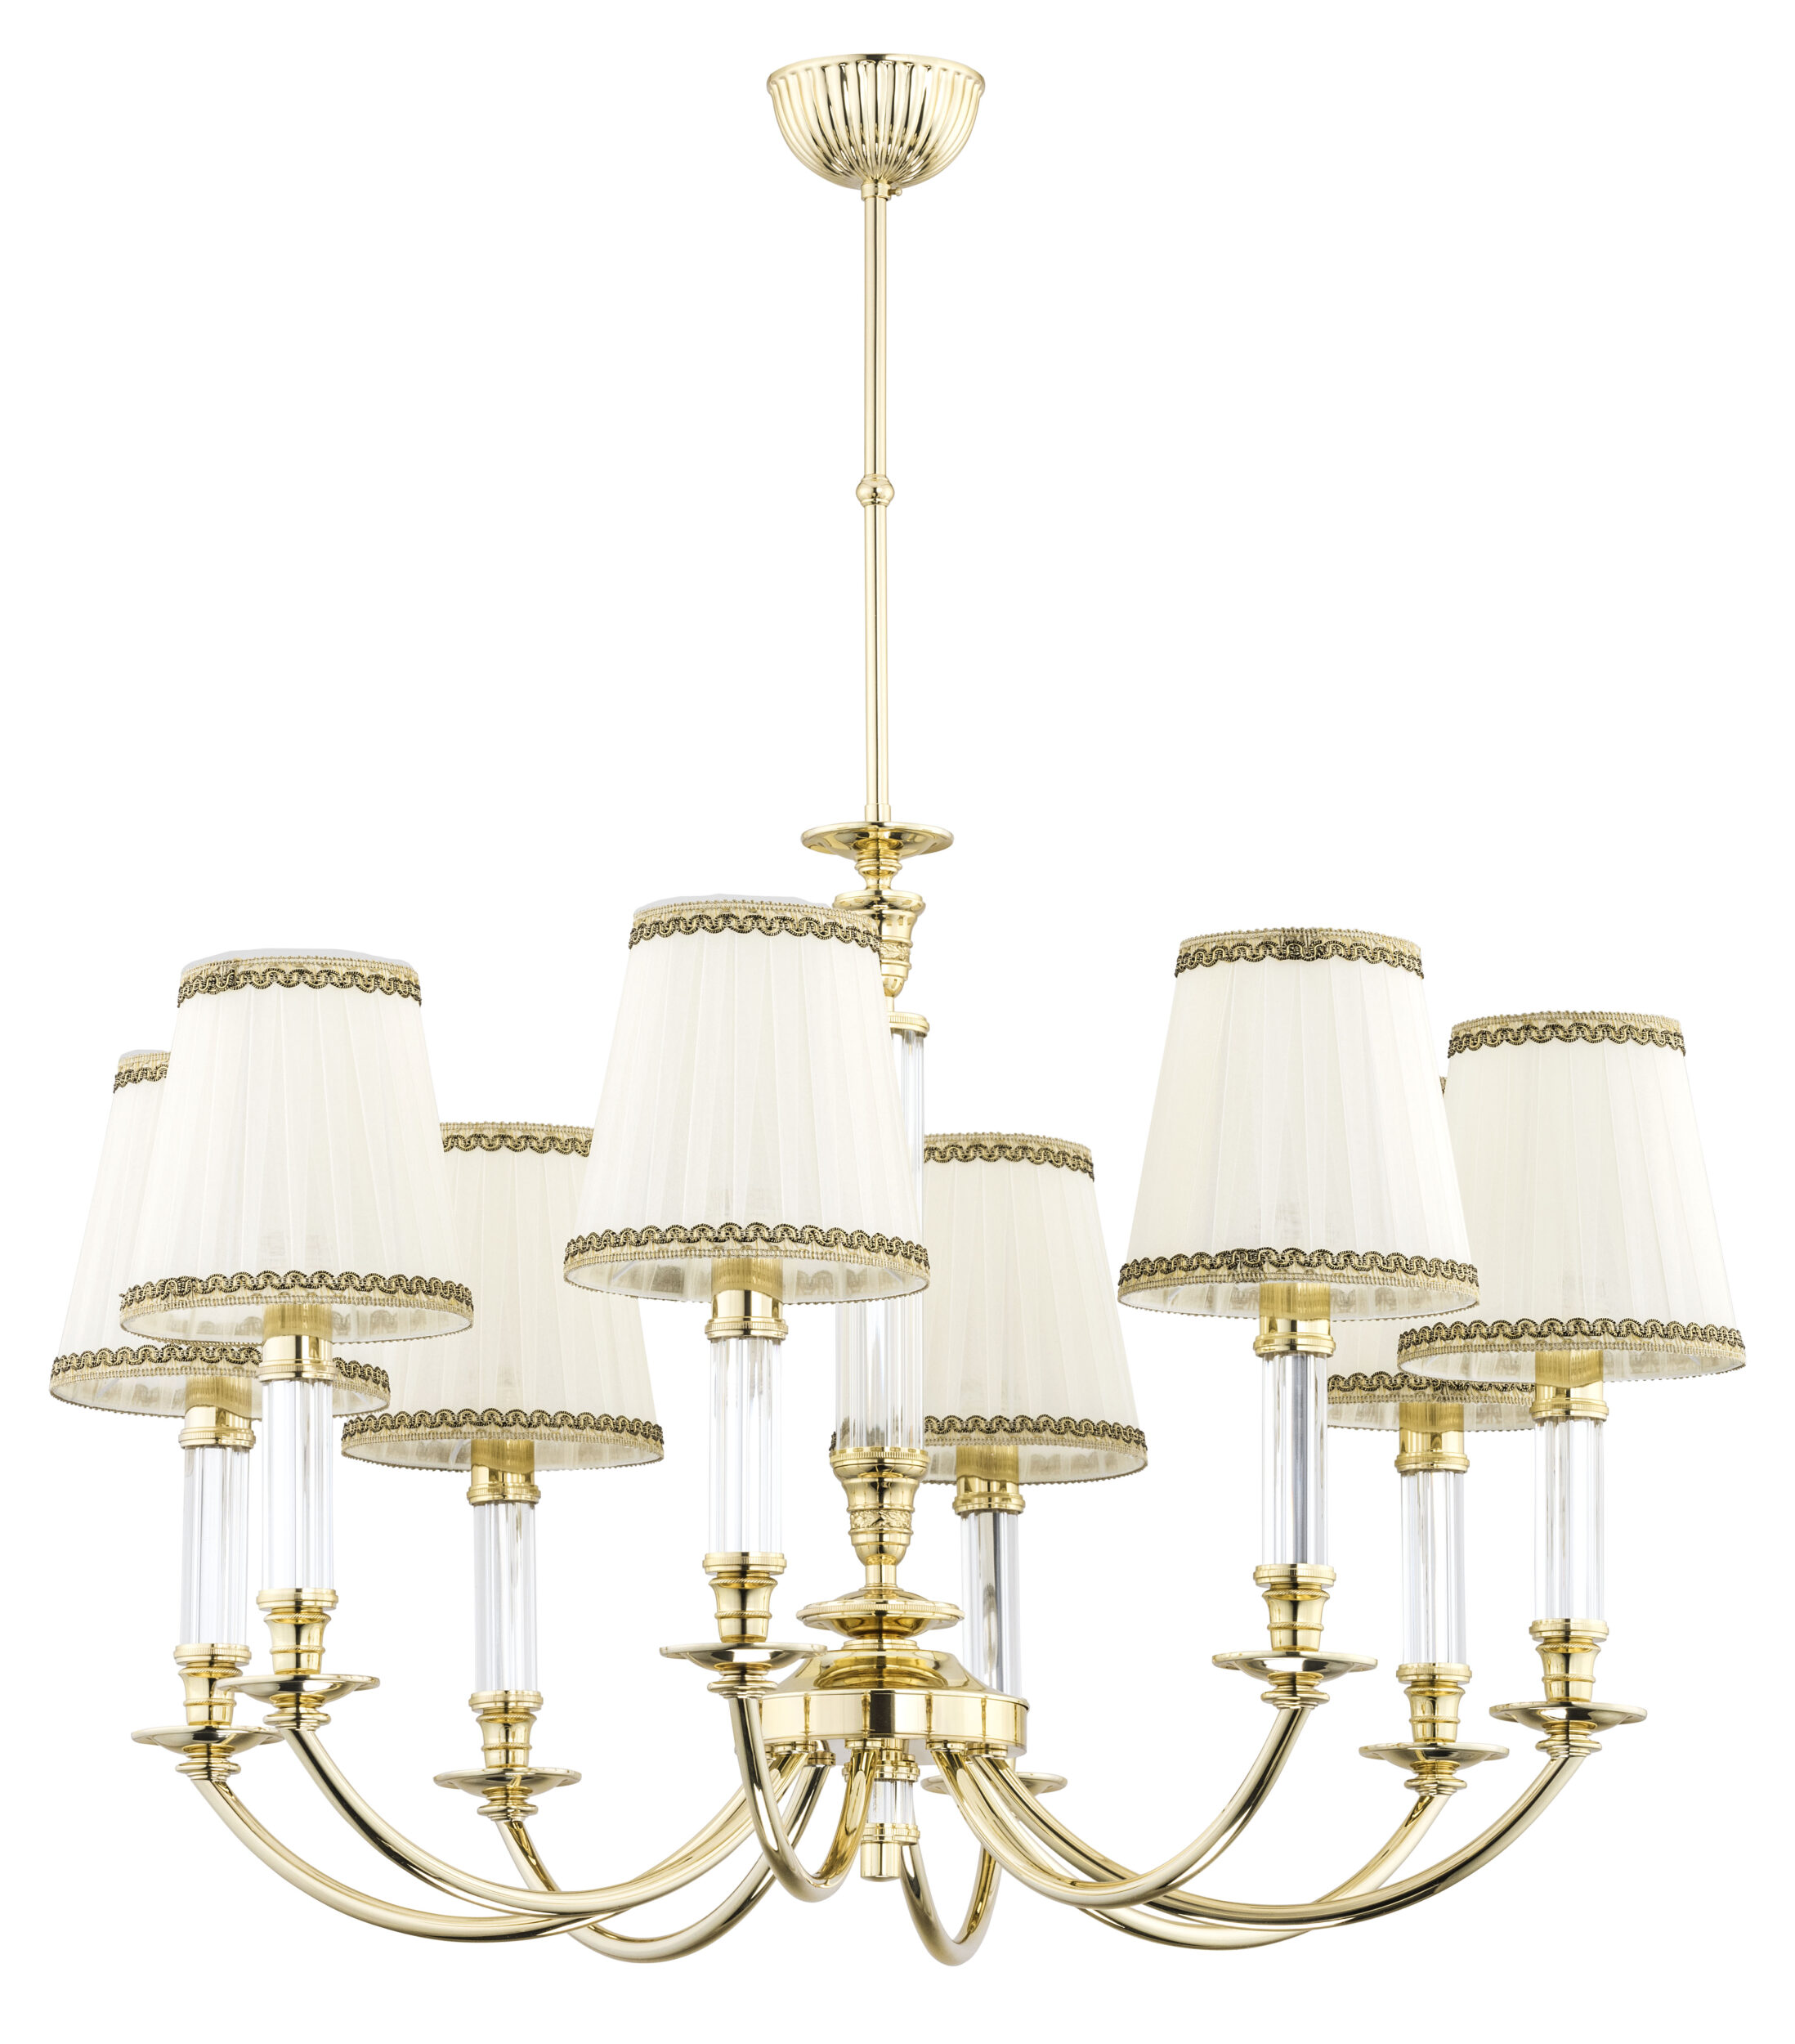 8 Light Gold Chandelier Napoli Cream Pleated Shade Luxury Chandelier